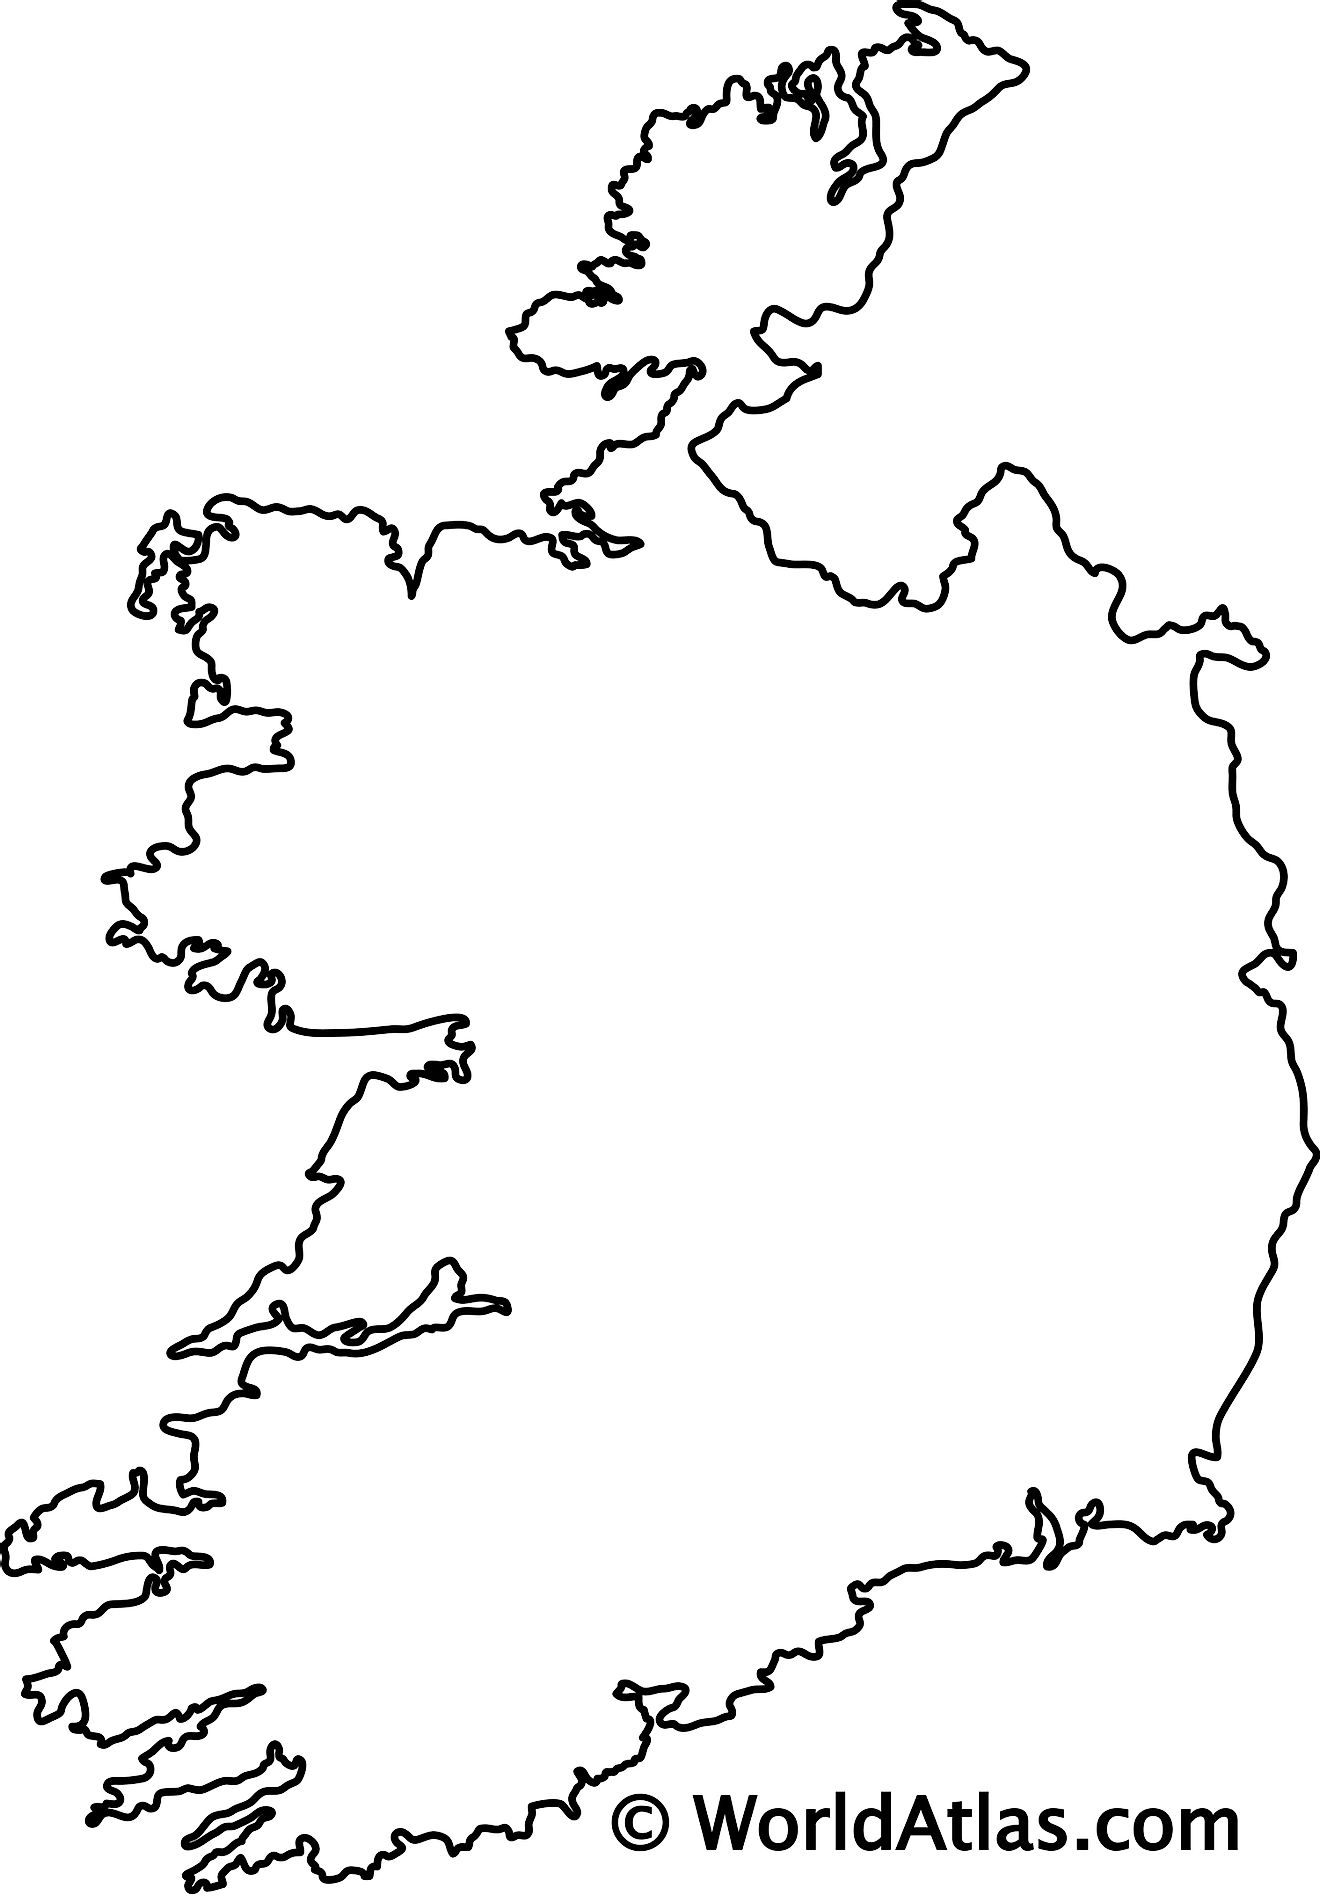 Blank Outline Map of Ireland